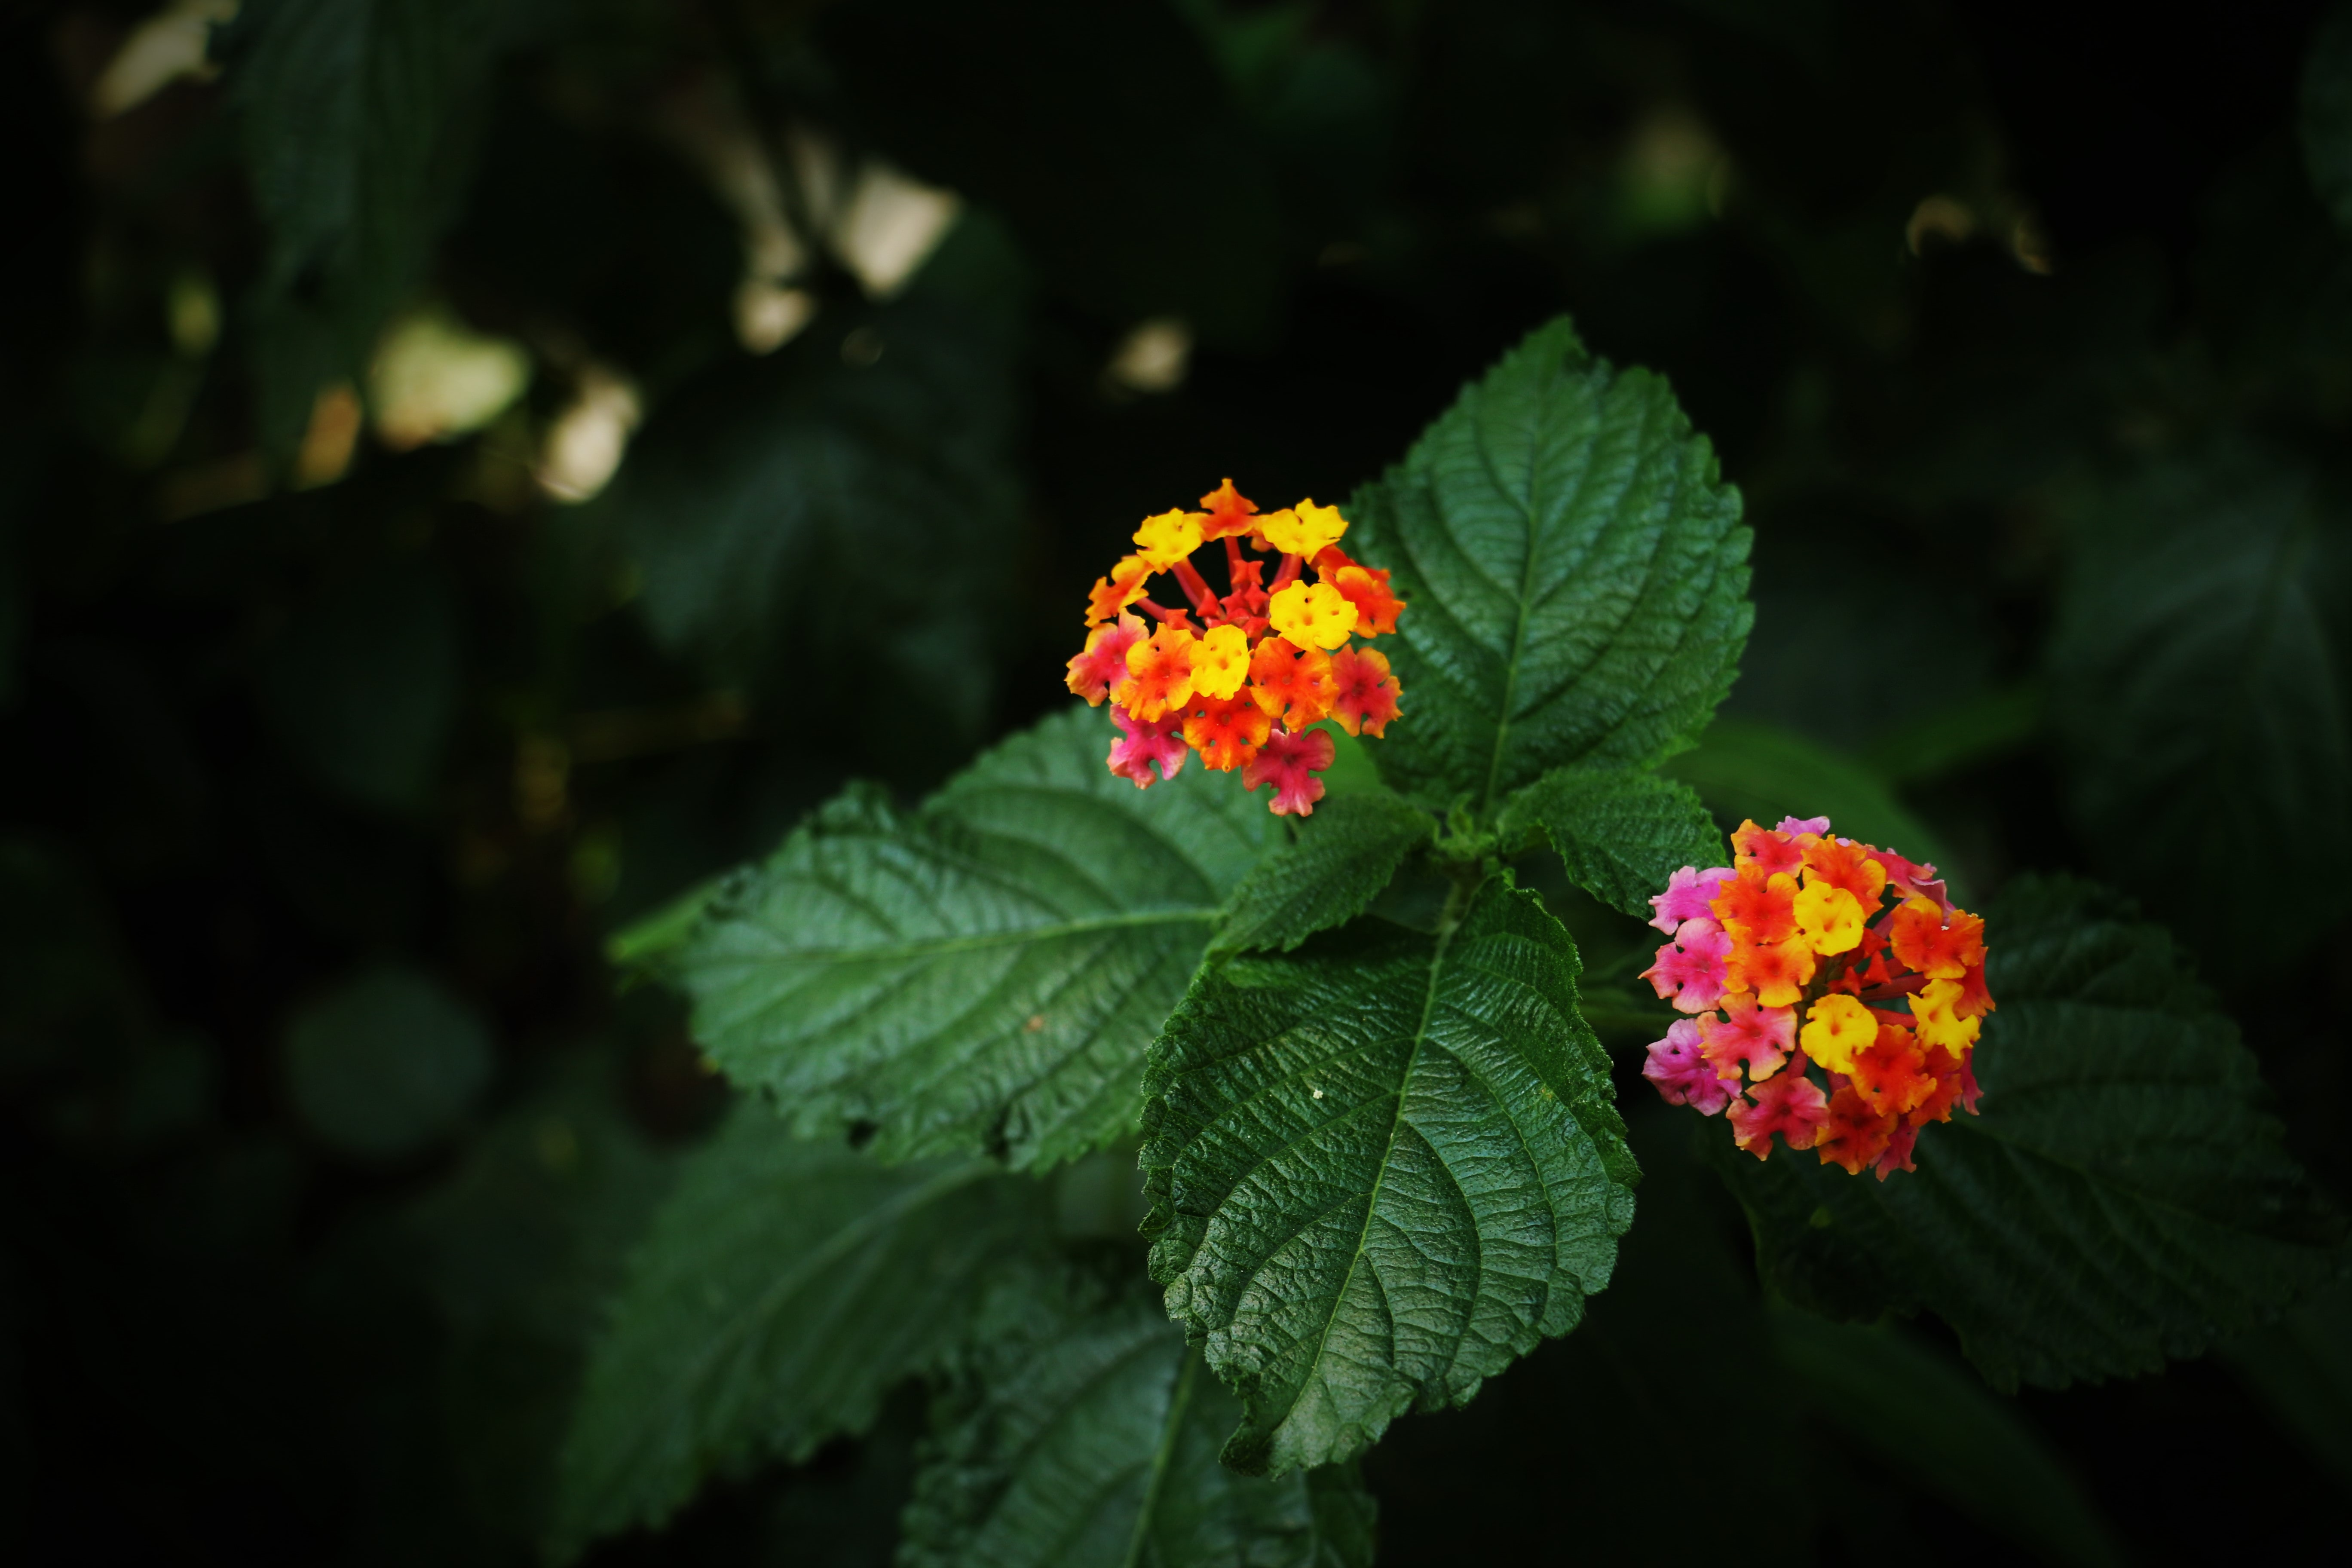 Close up of a plant with clusters of yellow, pink and red flowers